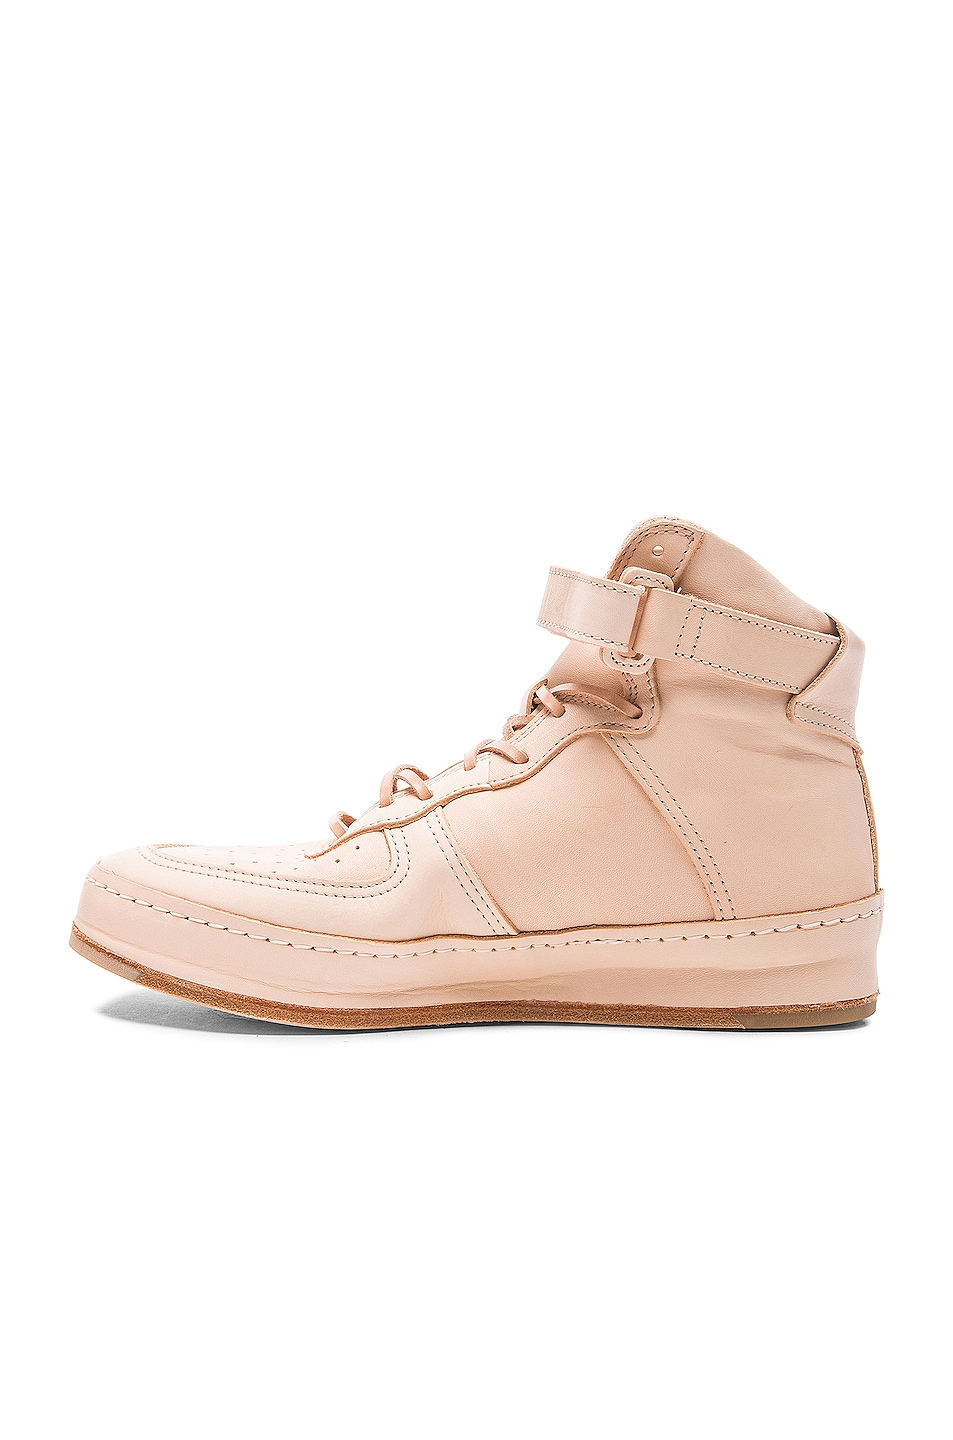 Image 5 of Hender Scheme Manual Industrial Product 01 in Natural